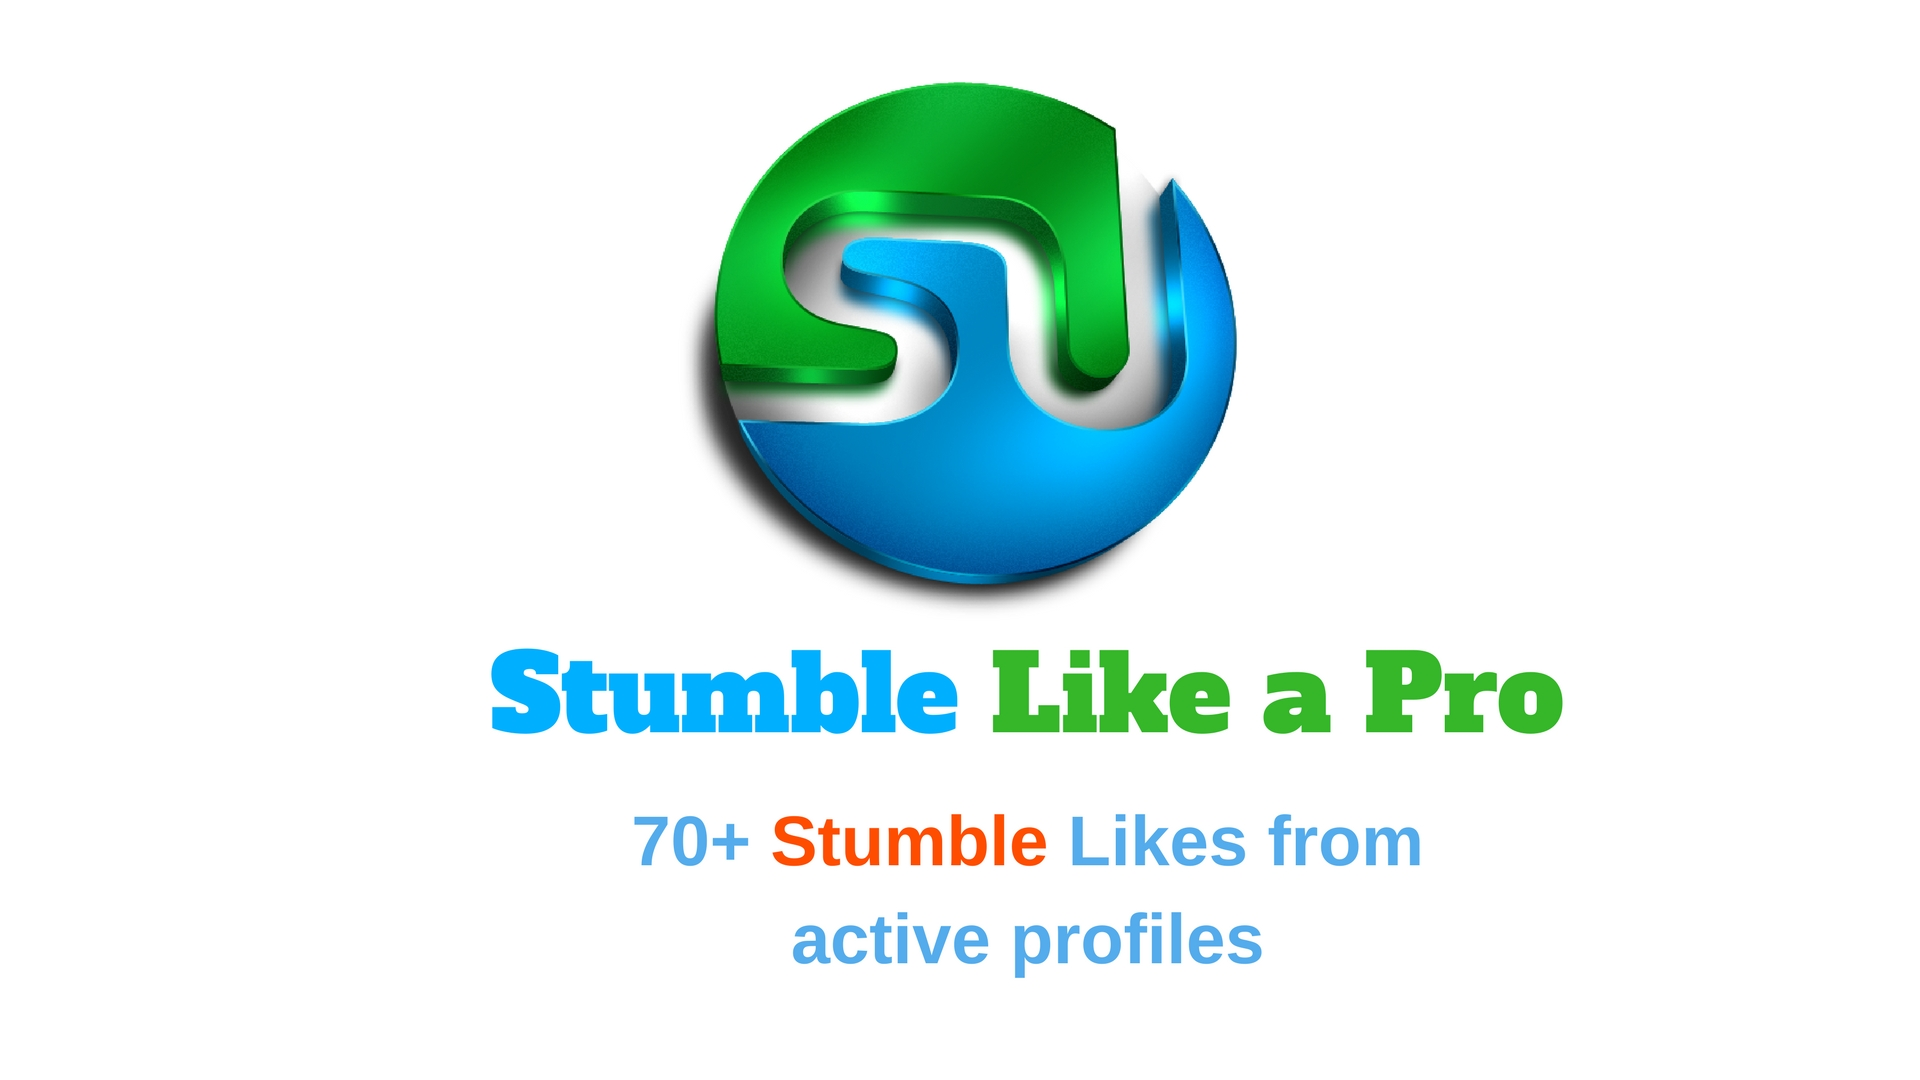 Provide 70+ Stumbleupon Likes from active profiles